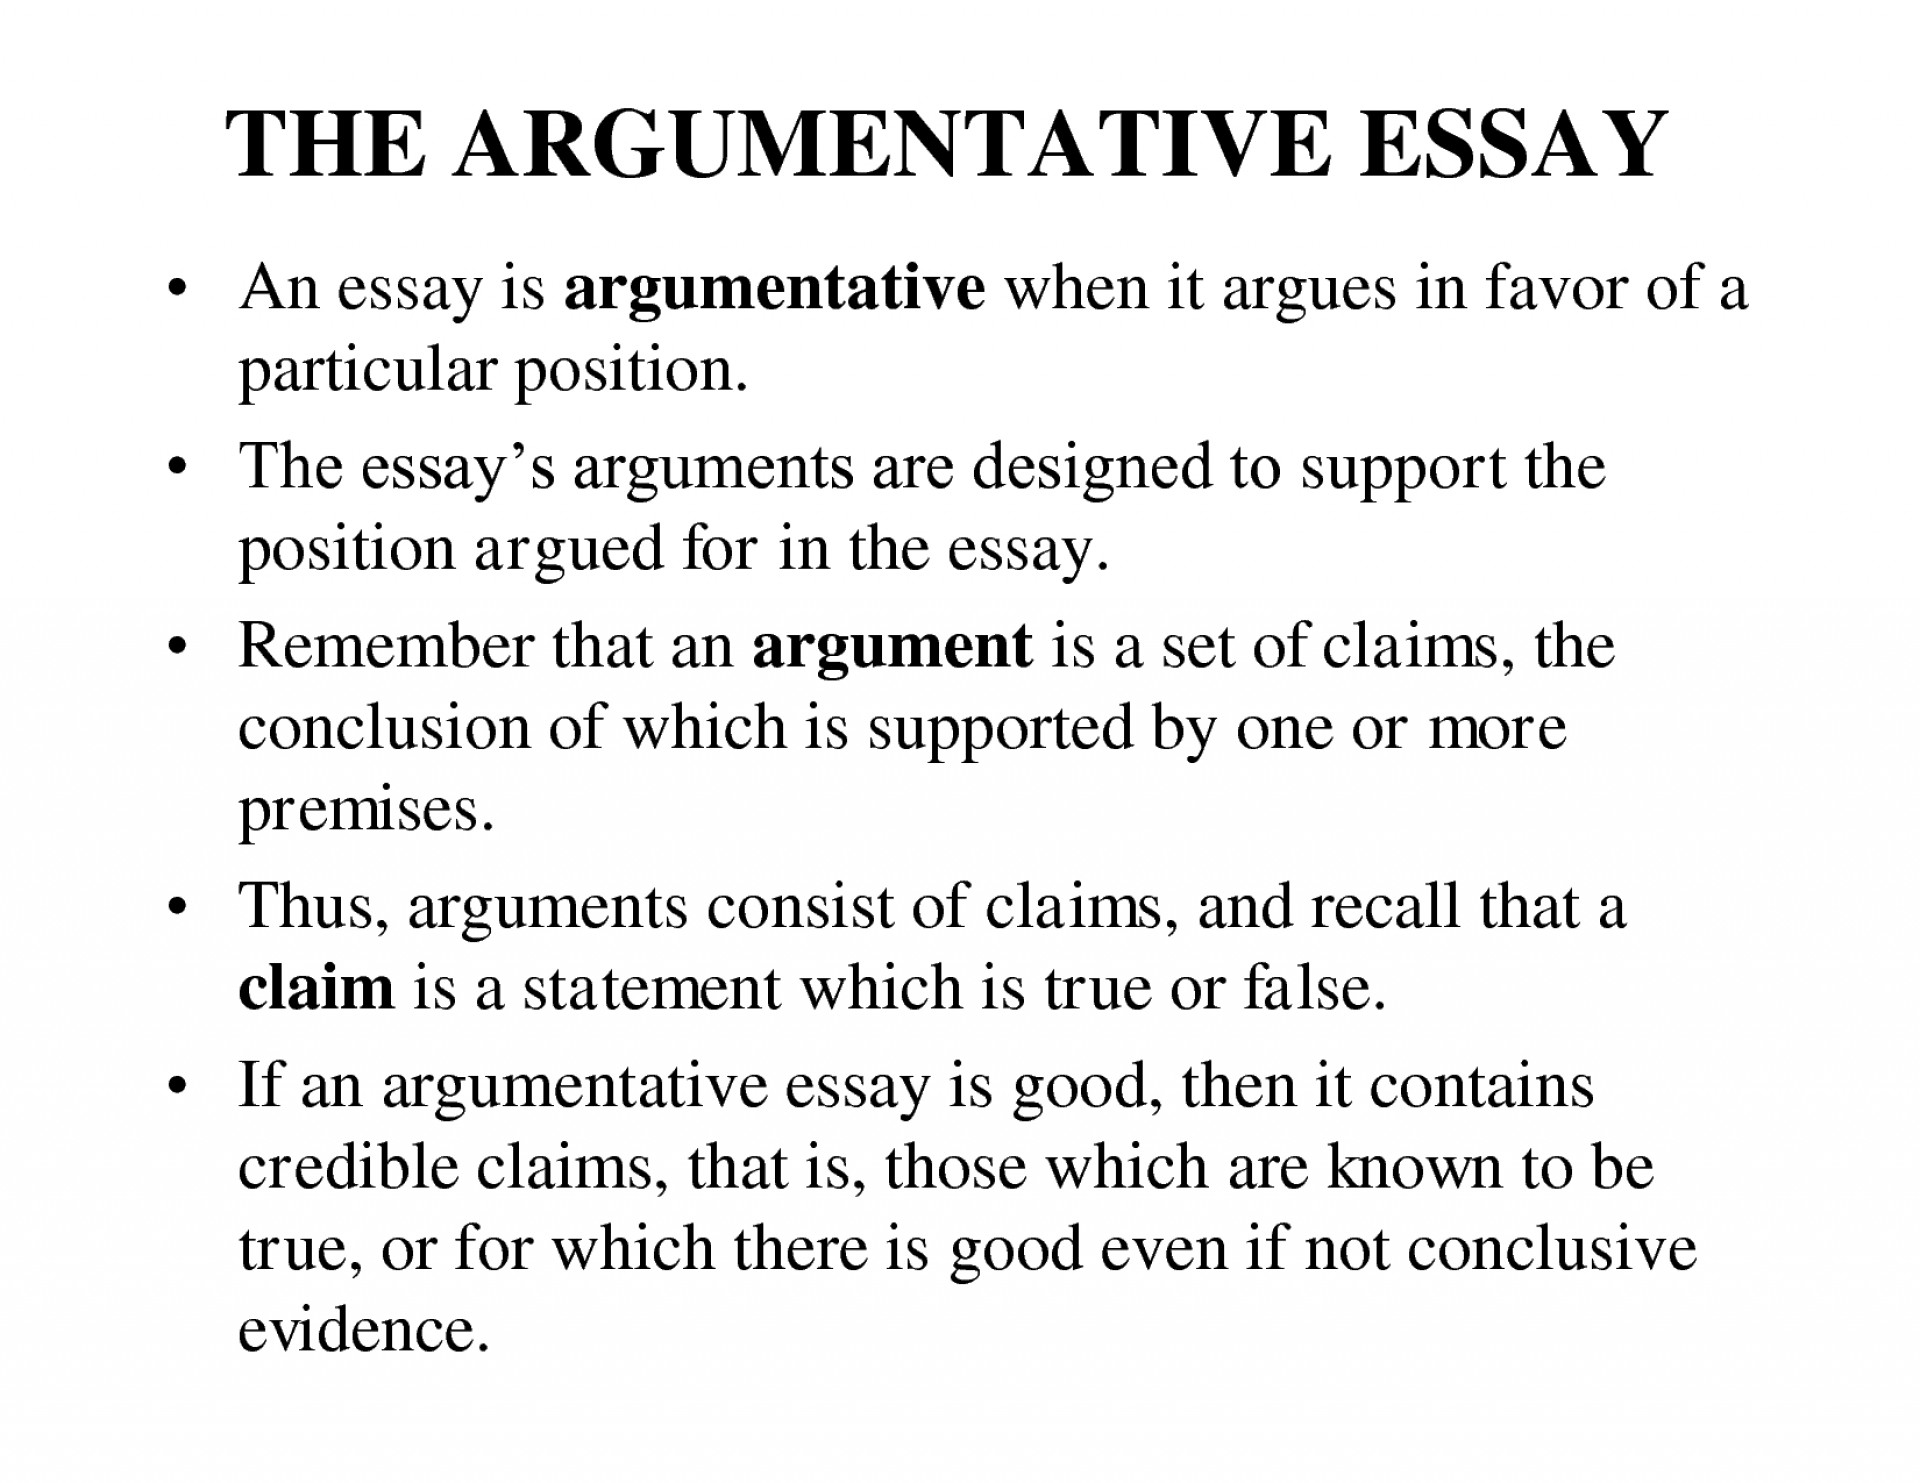 005 Persuasive Essay Conclusion How To Write An Argumentative Argument Introduction Pertaining Paragraphs For Impressive Structure Sentence Starters Template 1920